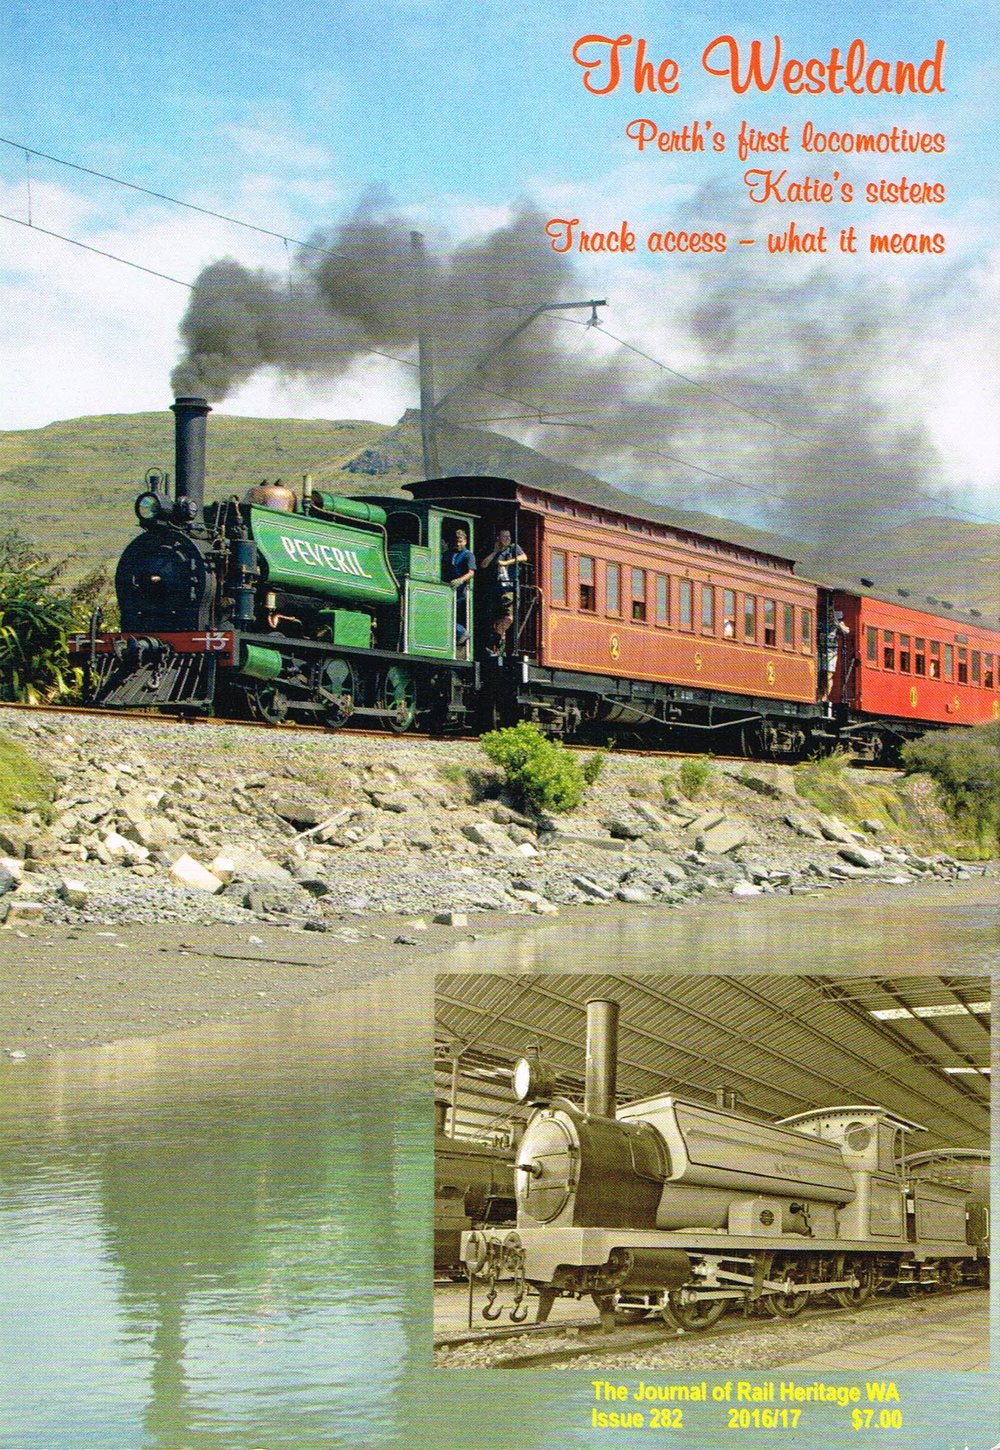 The+Westland+The+Journal+of+Railway+Hertiage+WA.jpg